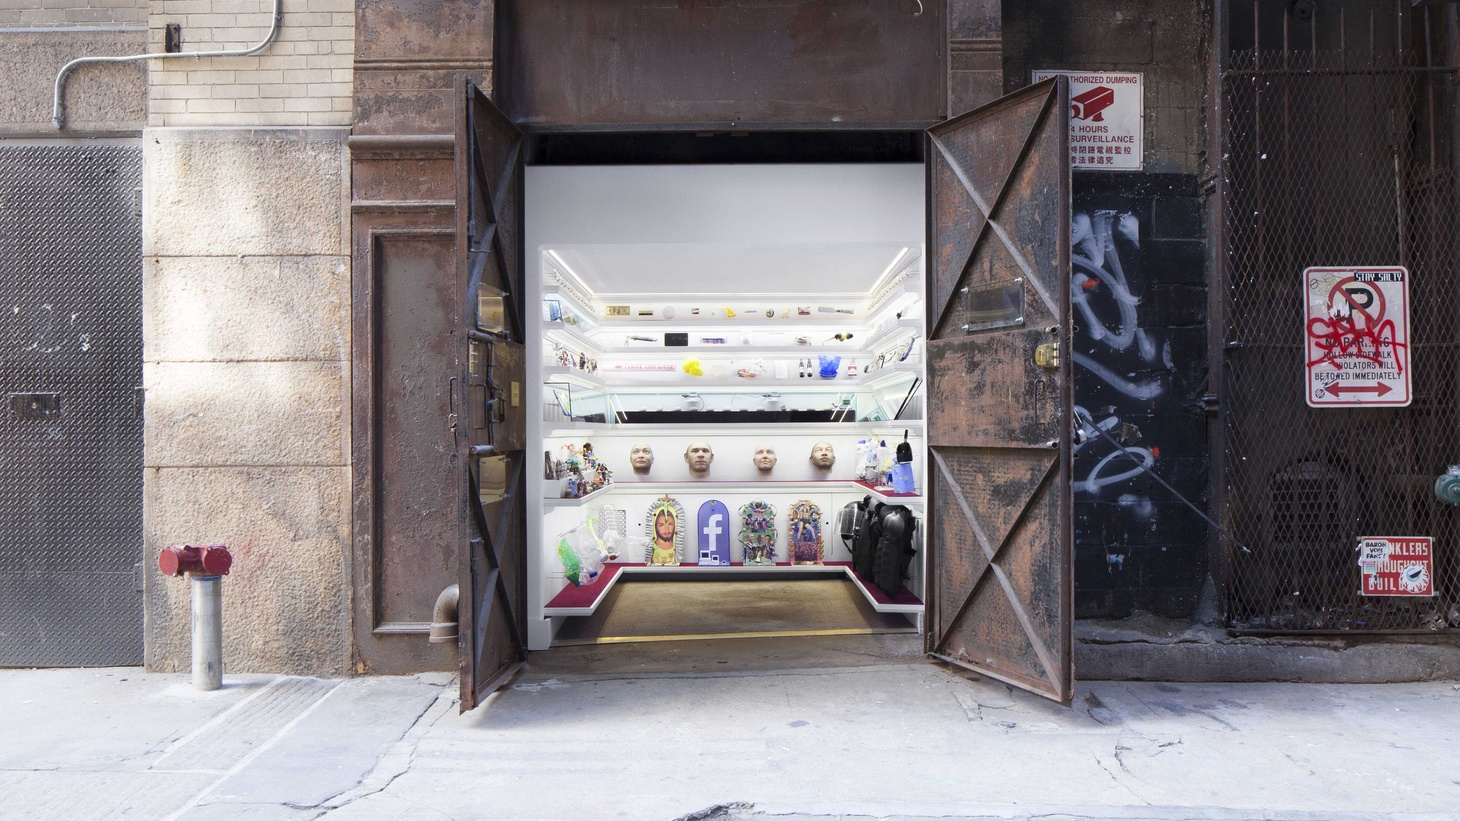 The Metropolitan Museum may have Queen Victoria's bedroom and the Temple of Dendur, but Alex Kalman's Mmuseumm in Lower Manhattan has Obama soap, Trump chocolate, and the curator's grandmother's closet. And it's open 24 hours.